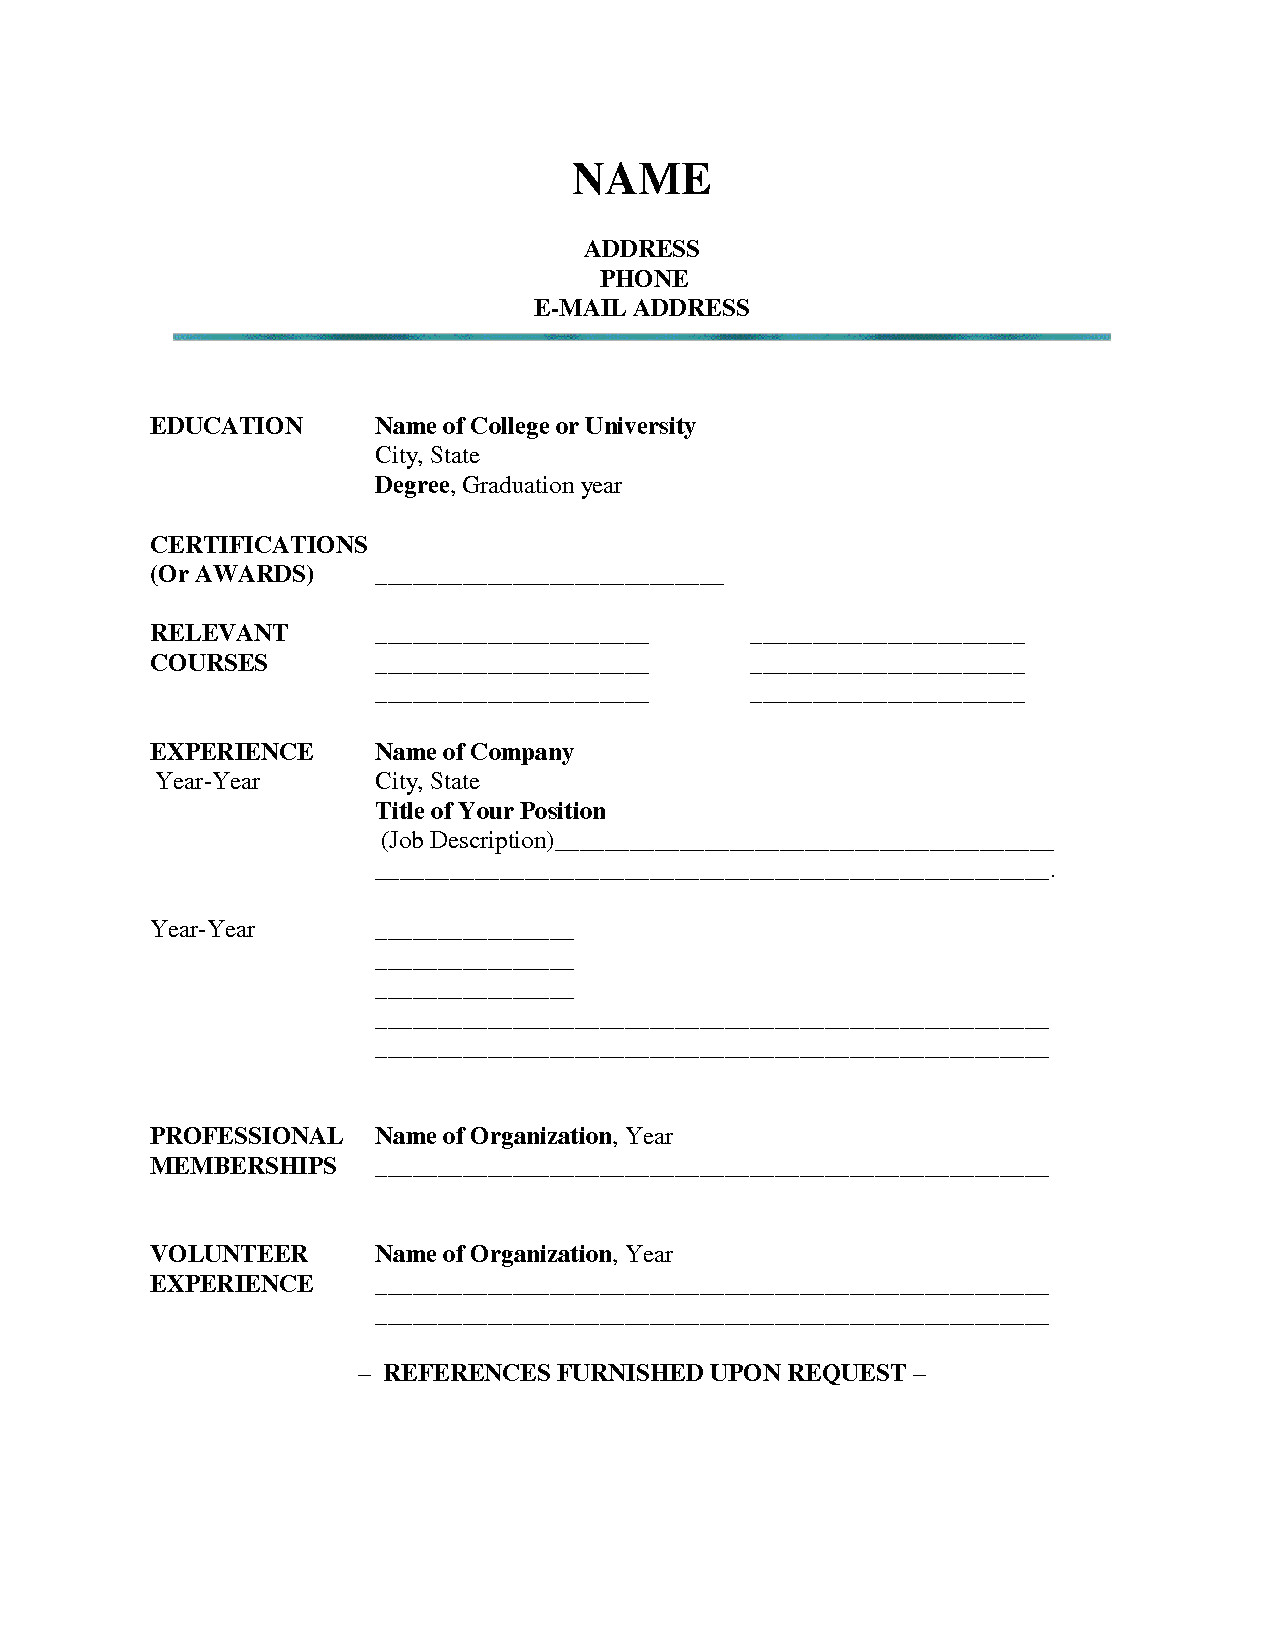 My Resume is Blank Blank Resume Template E Commerce